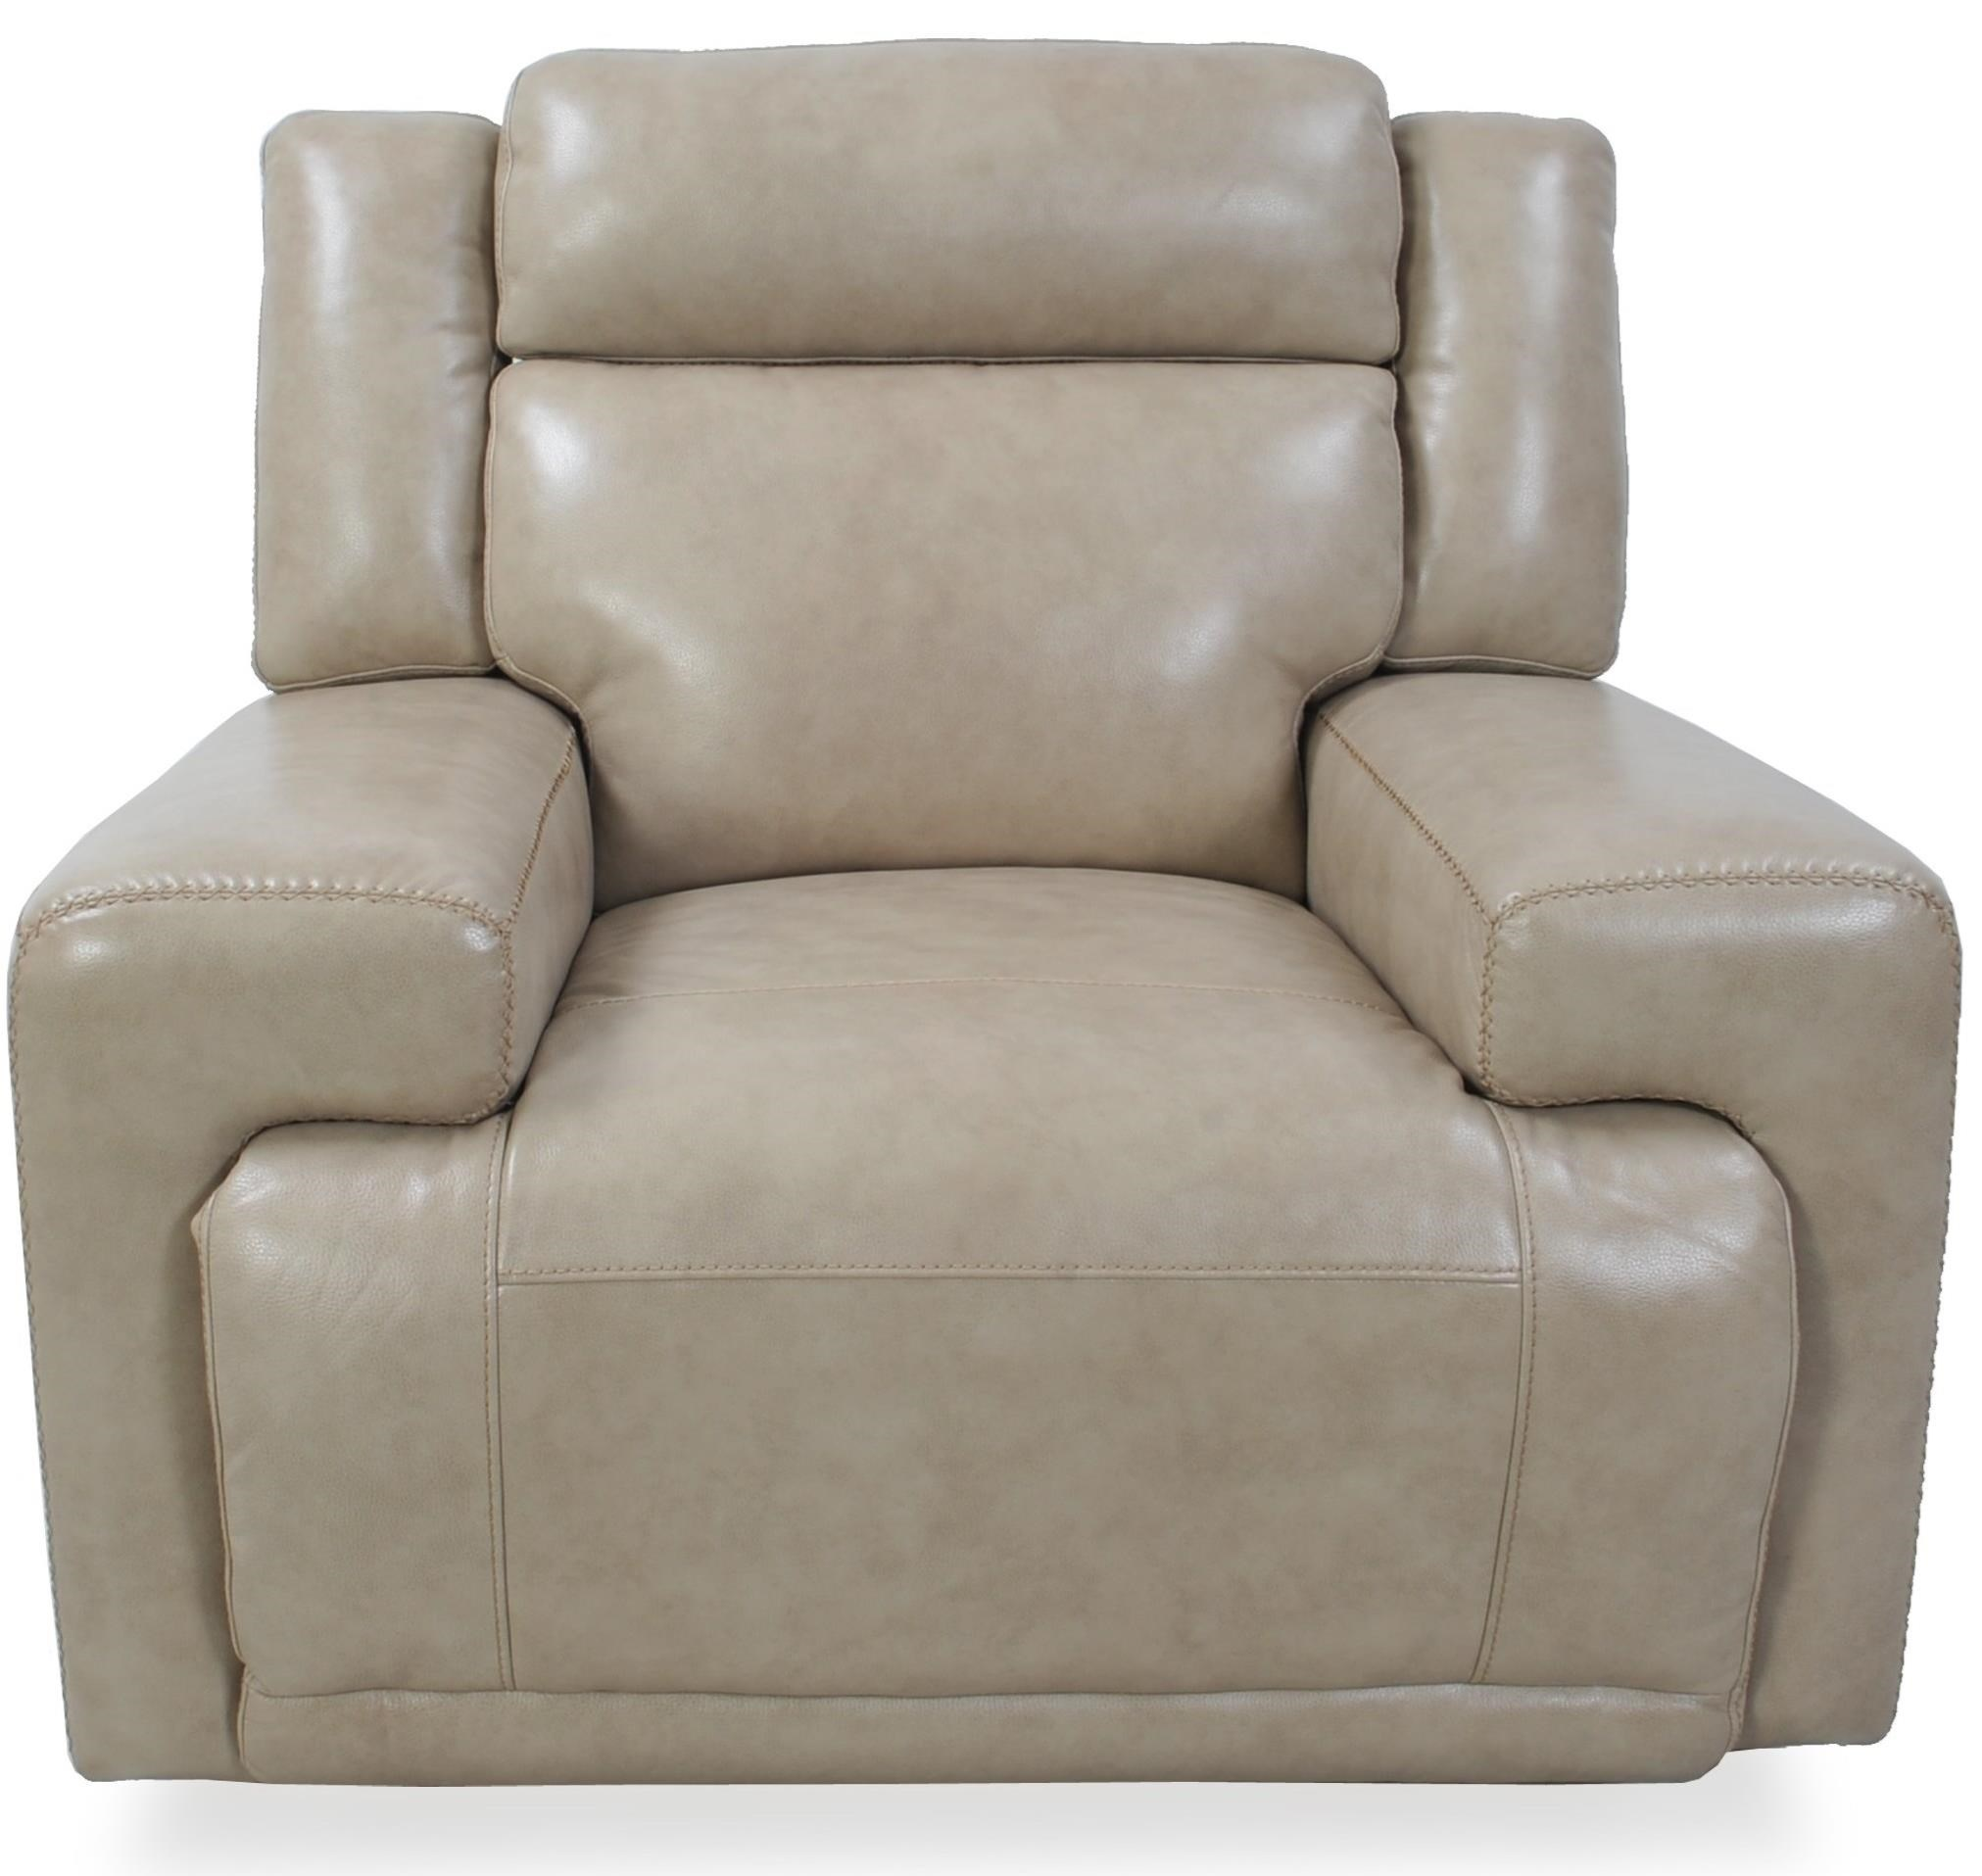 Futura Leather E1259 Electric Recliner Chair With Thick